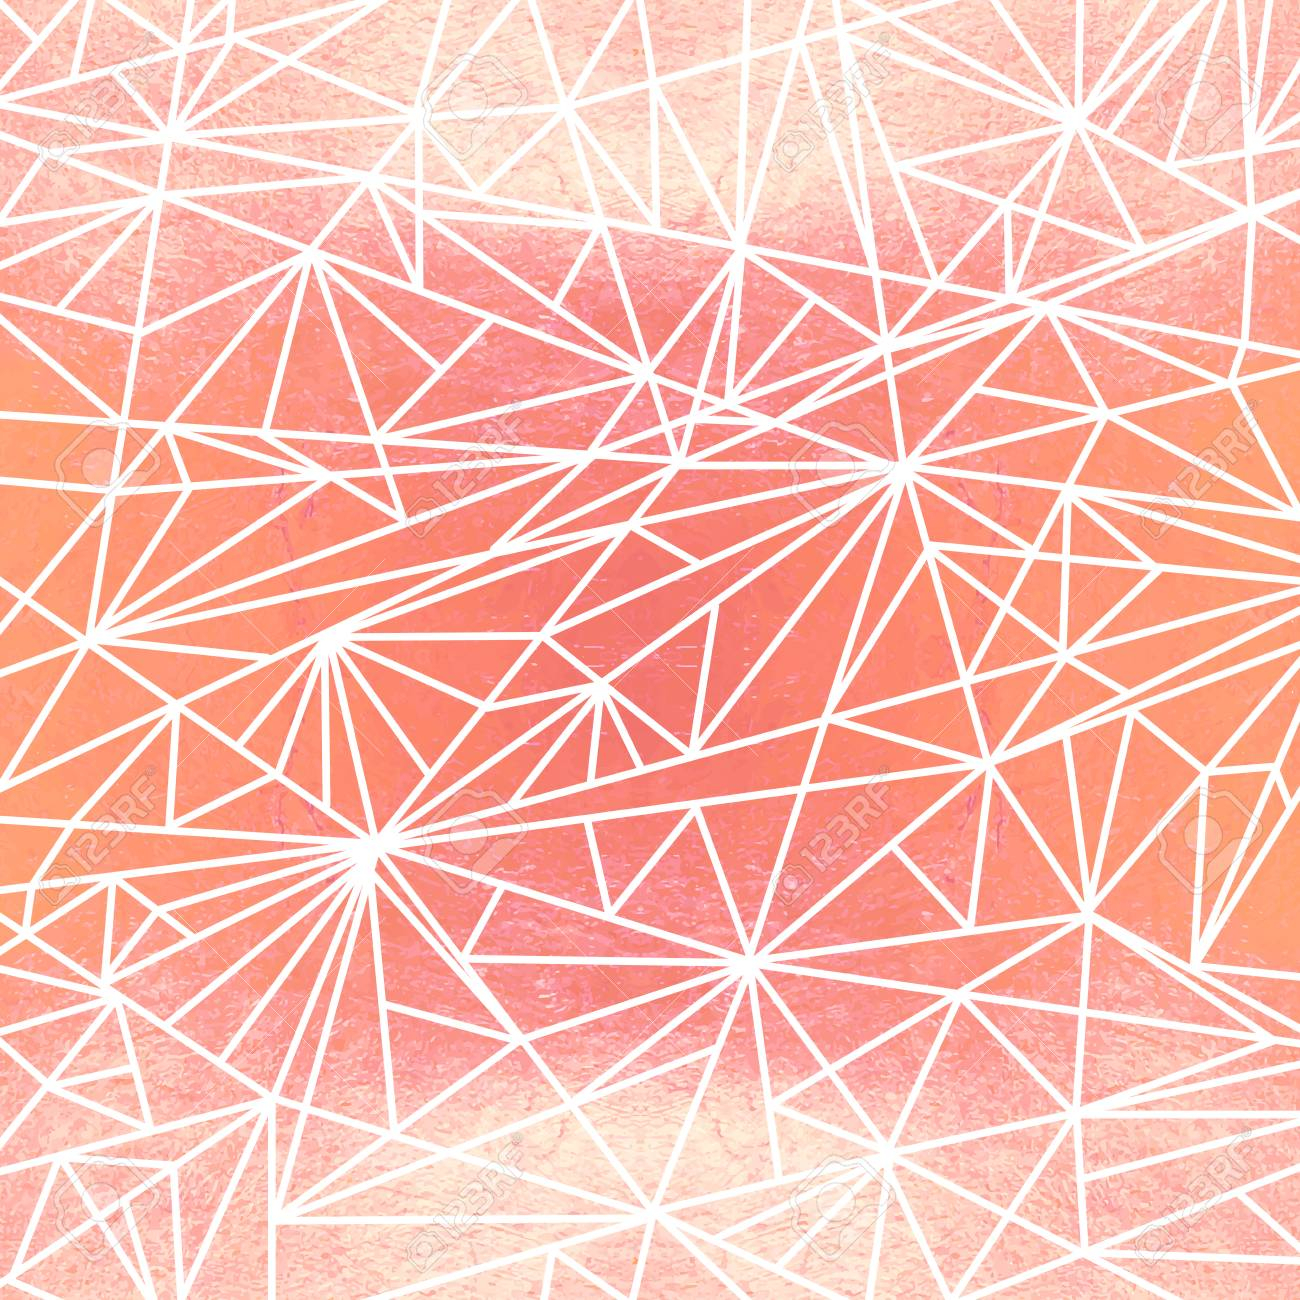 polygon watercolor mosaic on the rose gold background bright summer pattern with watercolor triangle